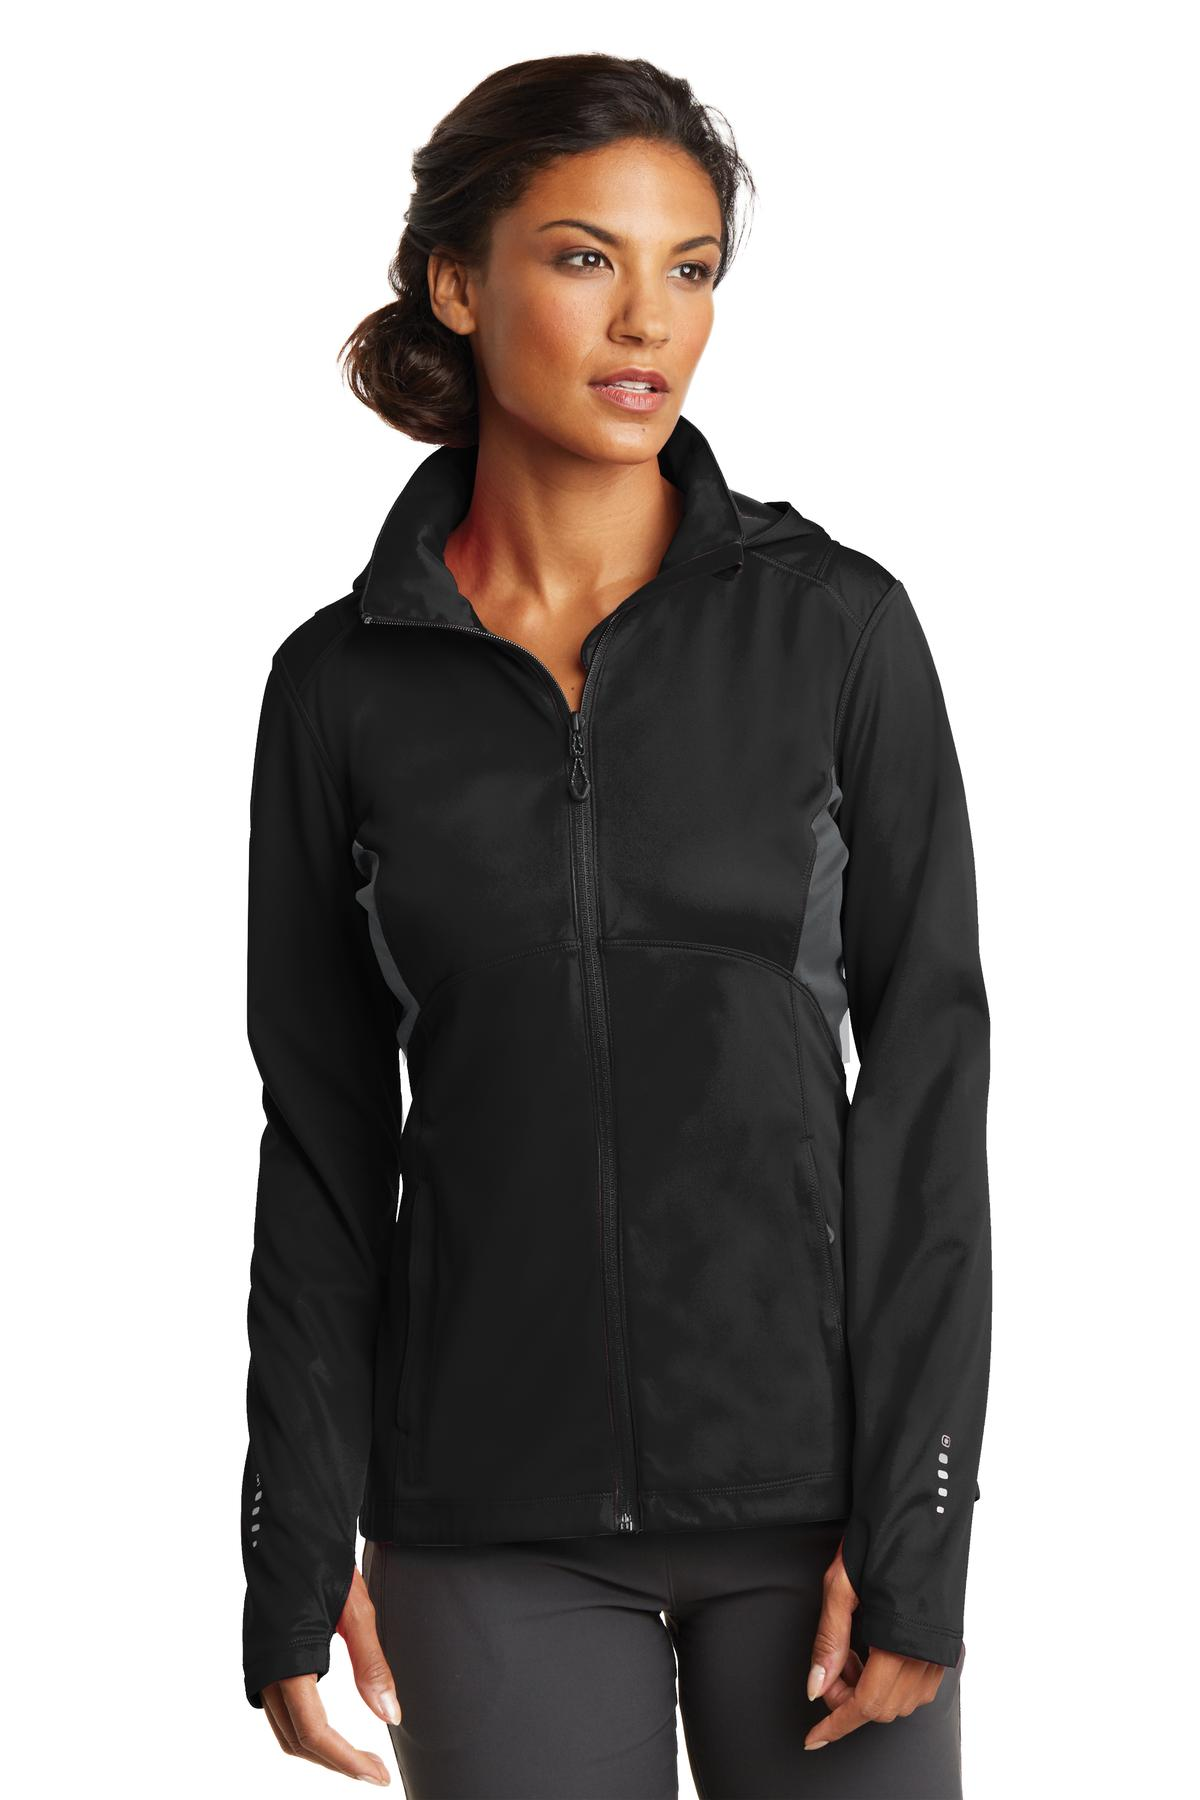 OGIO® LOE721 - ENDURANCE Ladies Pivot Soft Shell